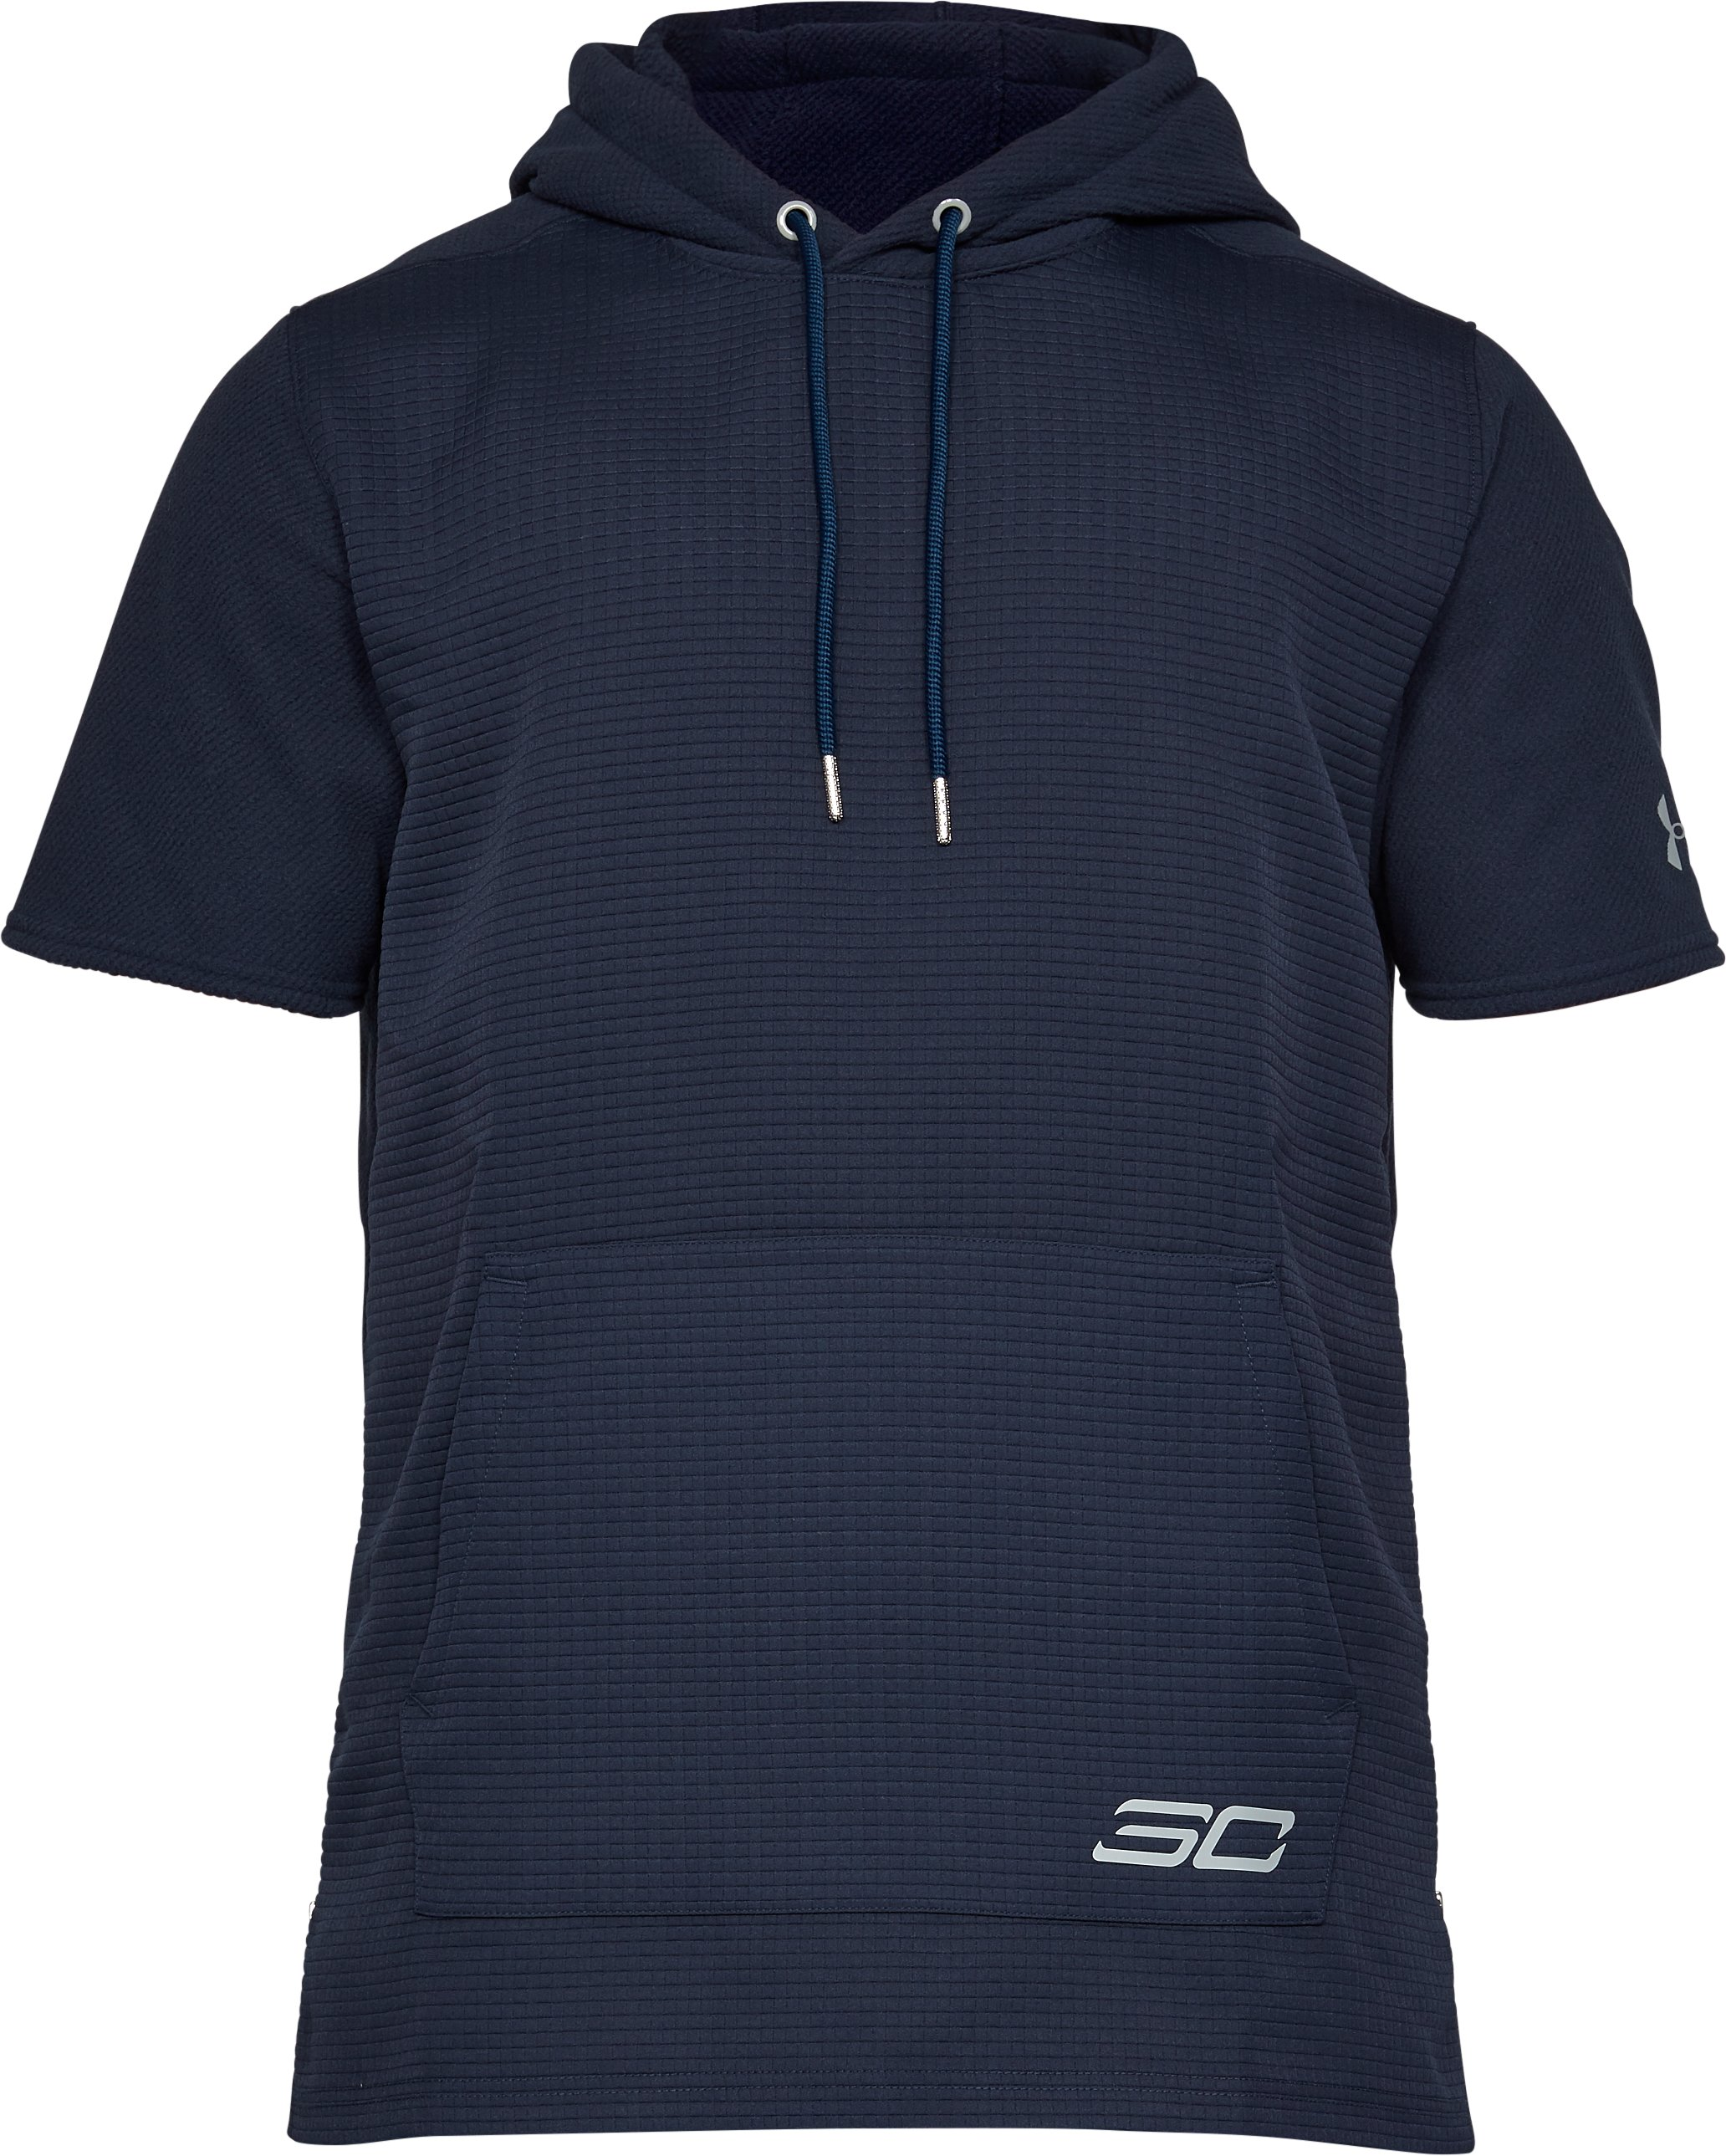 Men's SC30 Curry Life Short Sleeve Hoodie, Midnight Navy,